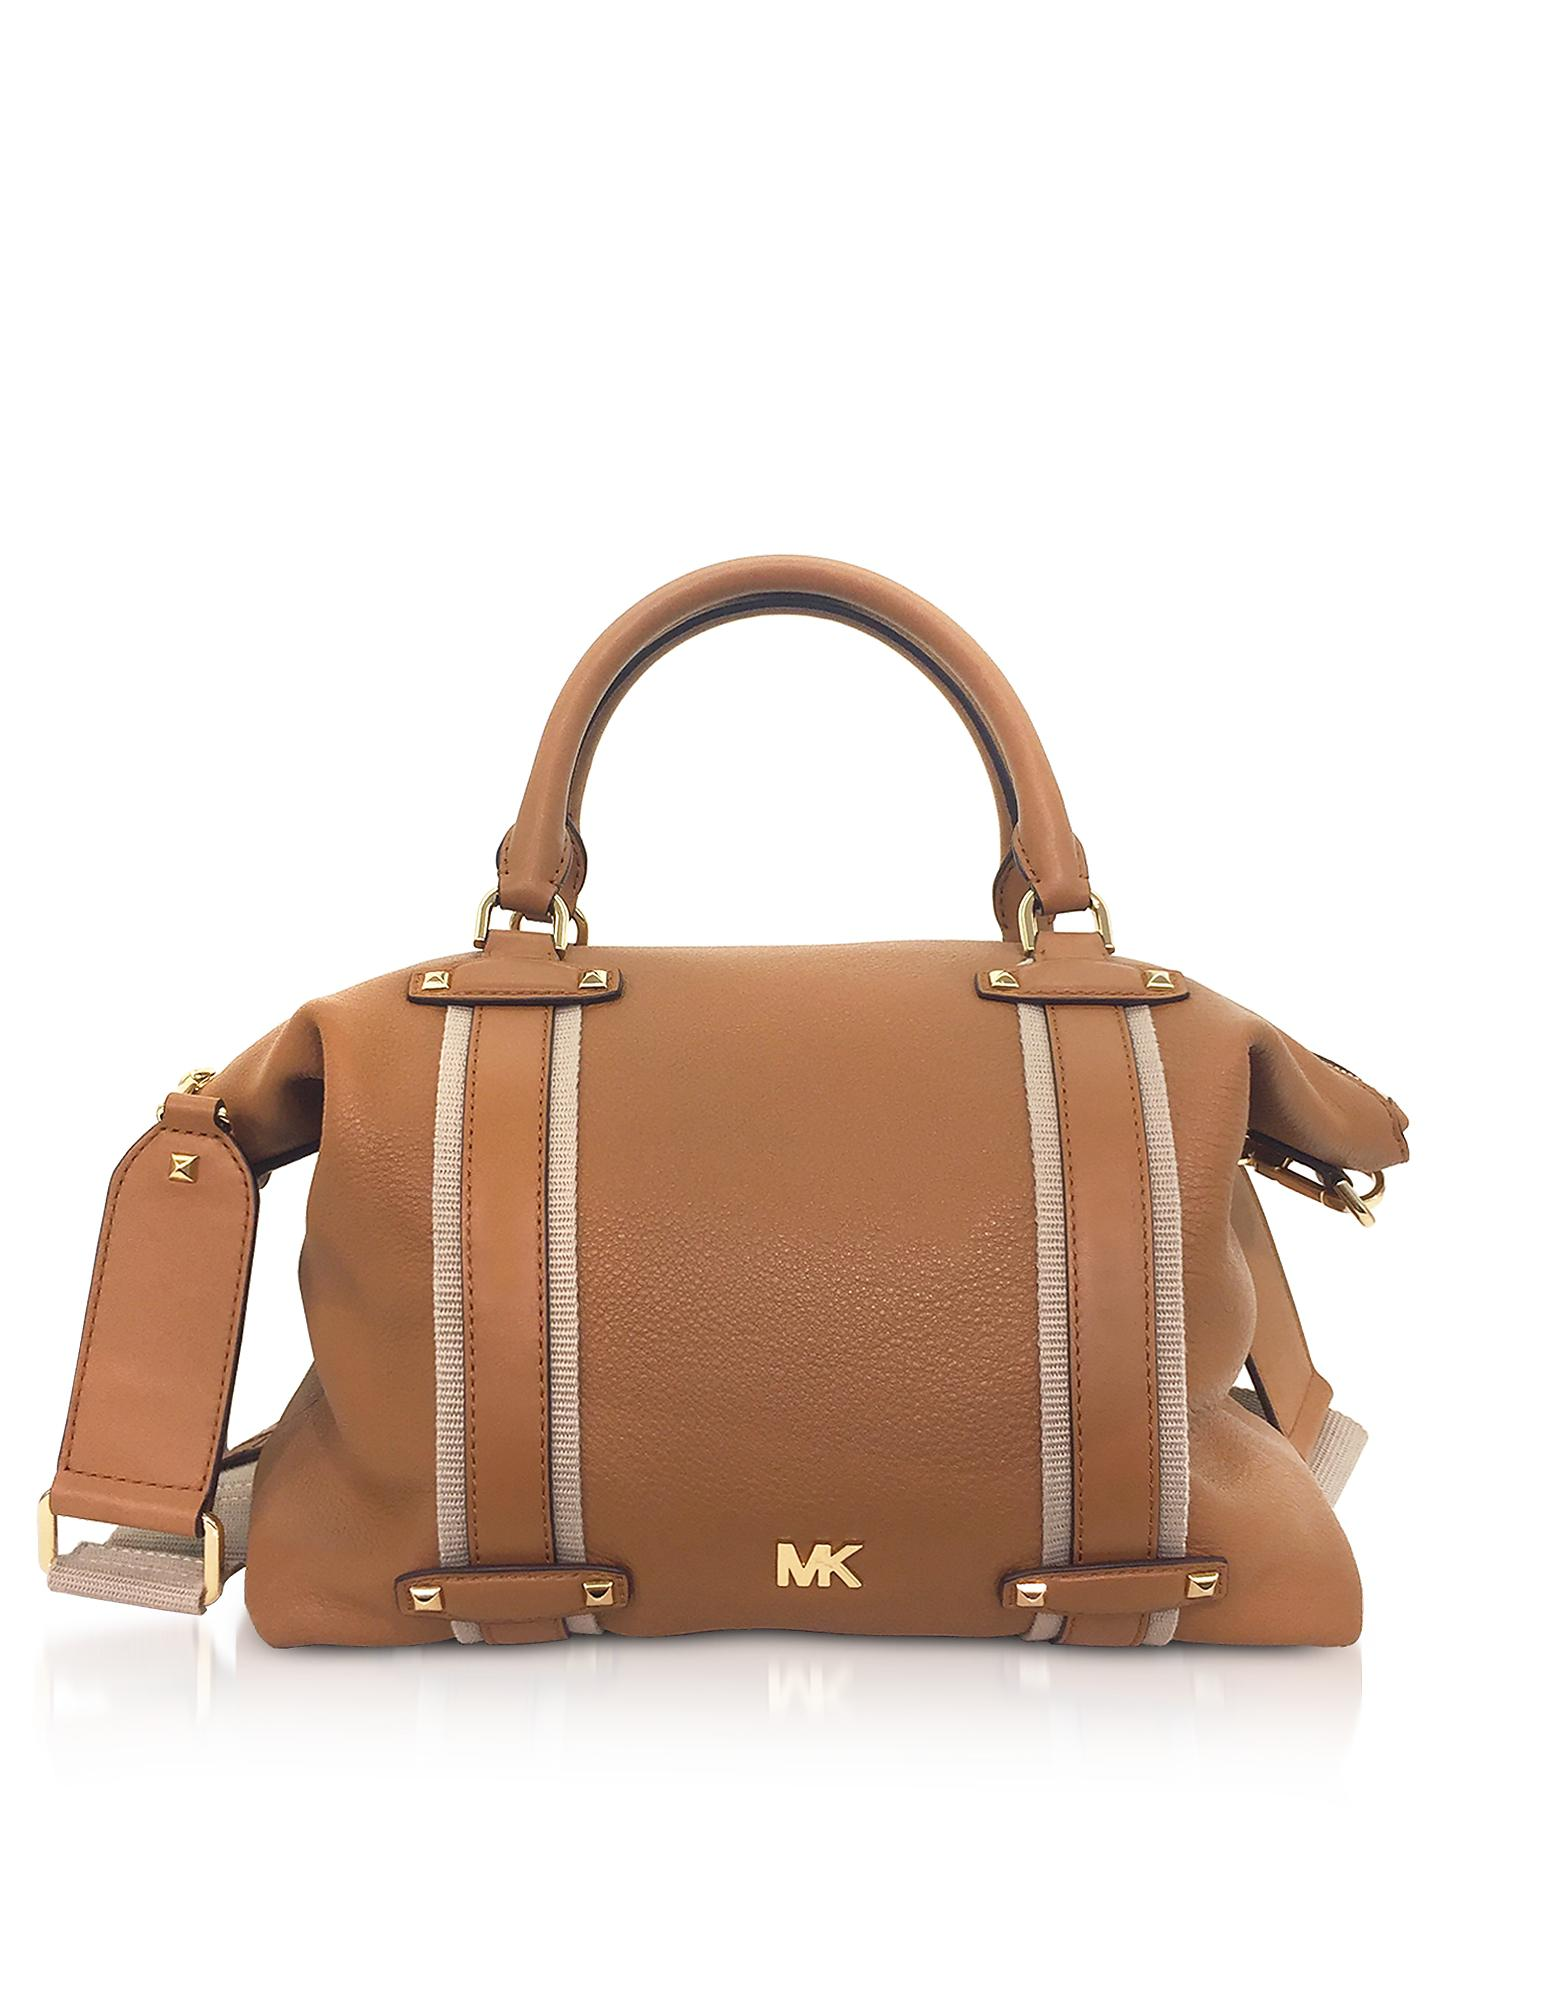 0e79b486b5fa2 Michael Kors Pebbled Leather Griffin Large Satchel in Brown - Lyst